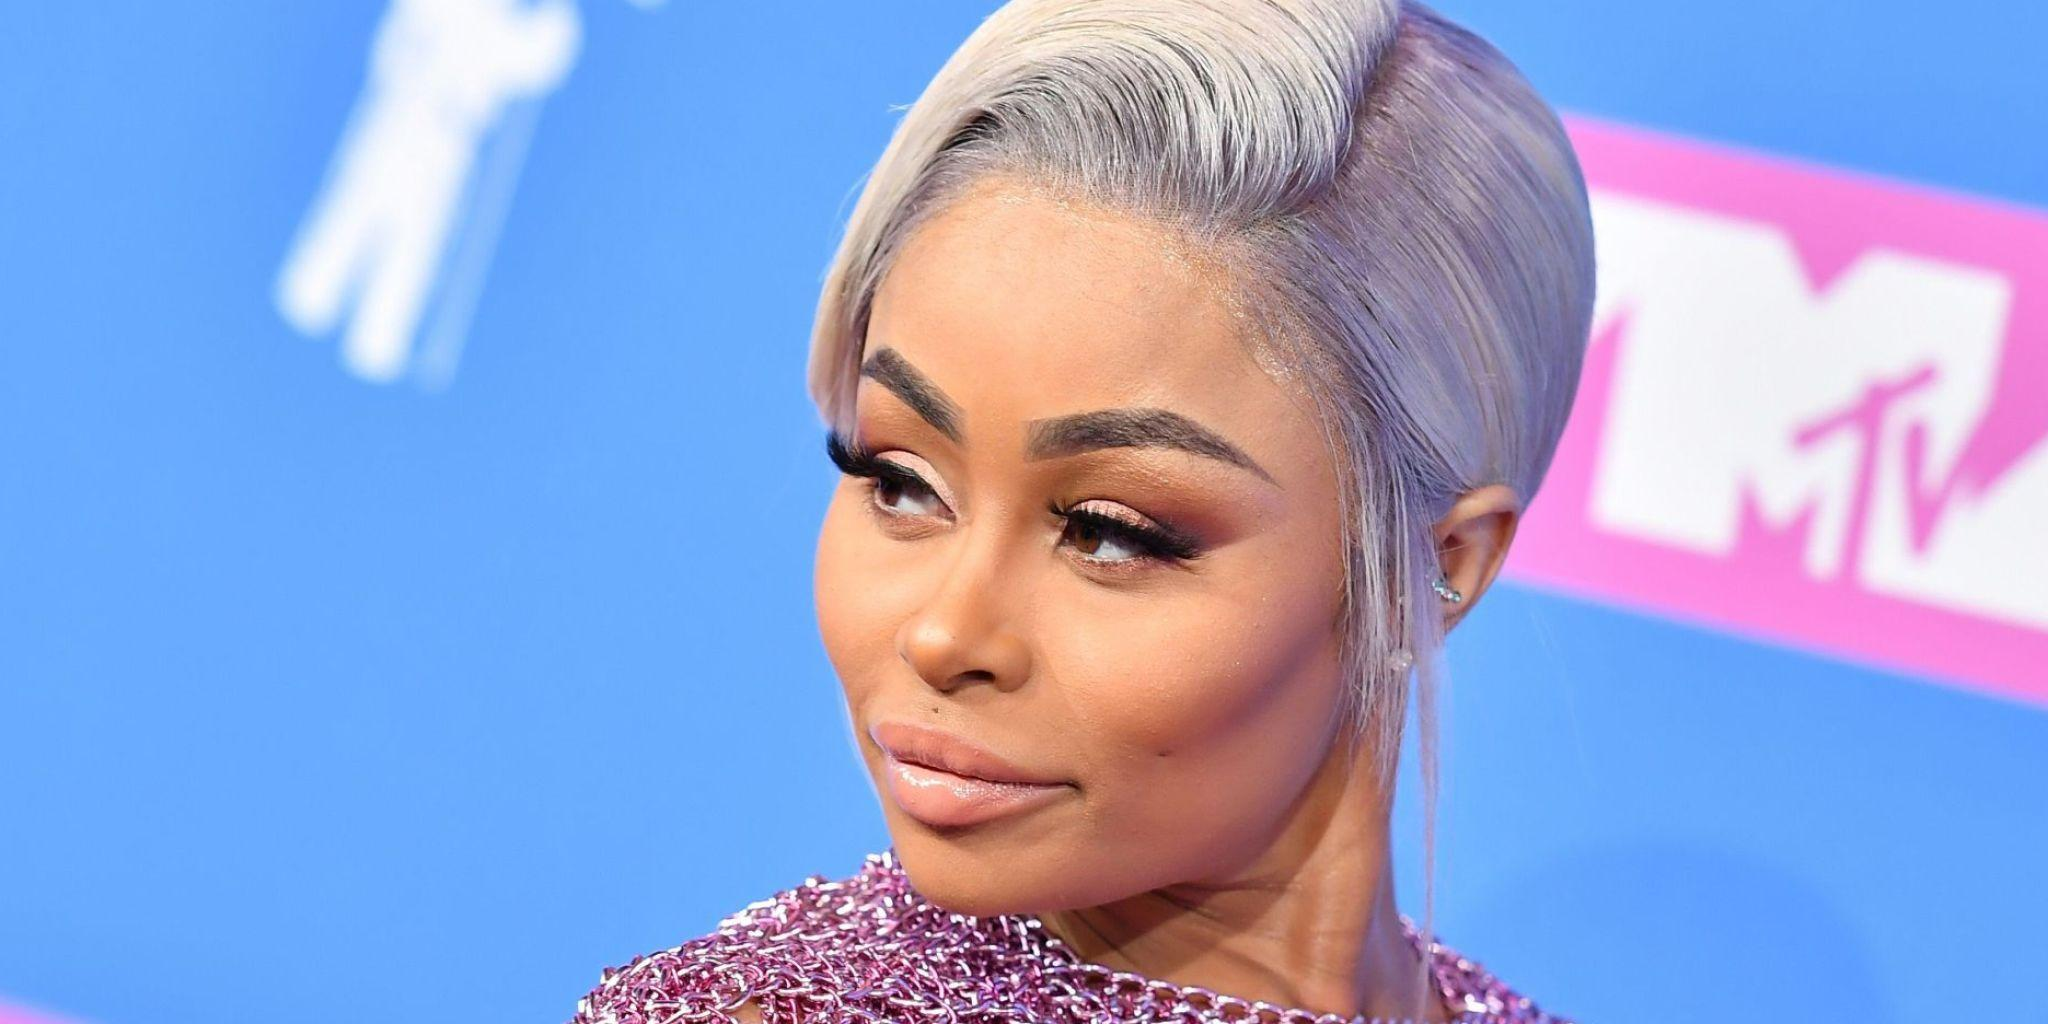 Blac Chyna Grants Fans' Wish And Brings Back 'Cooking With Chyna'